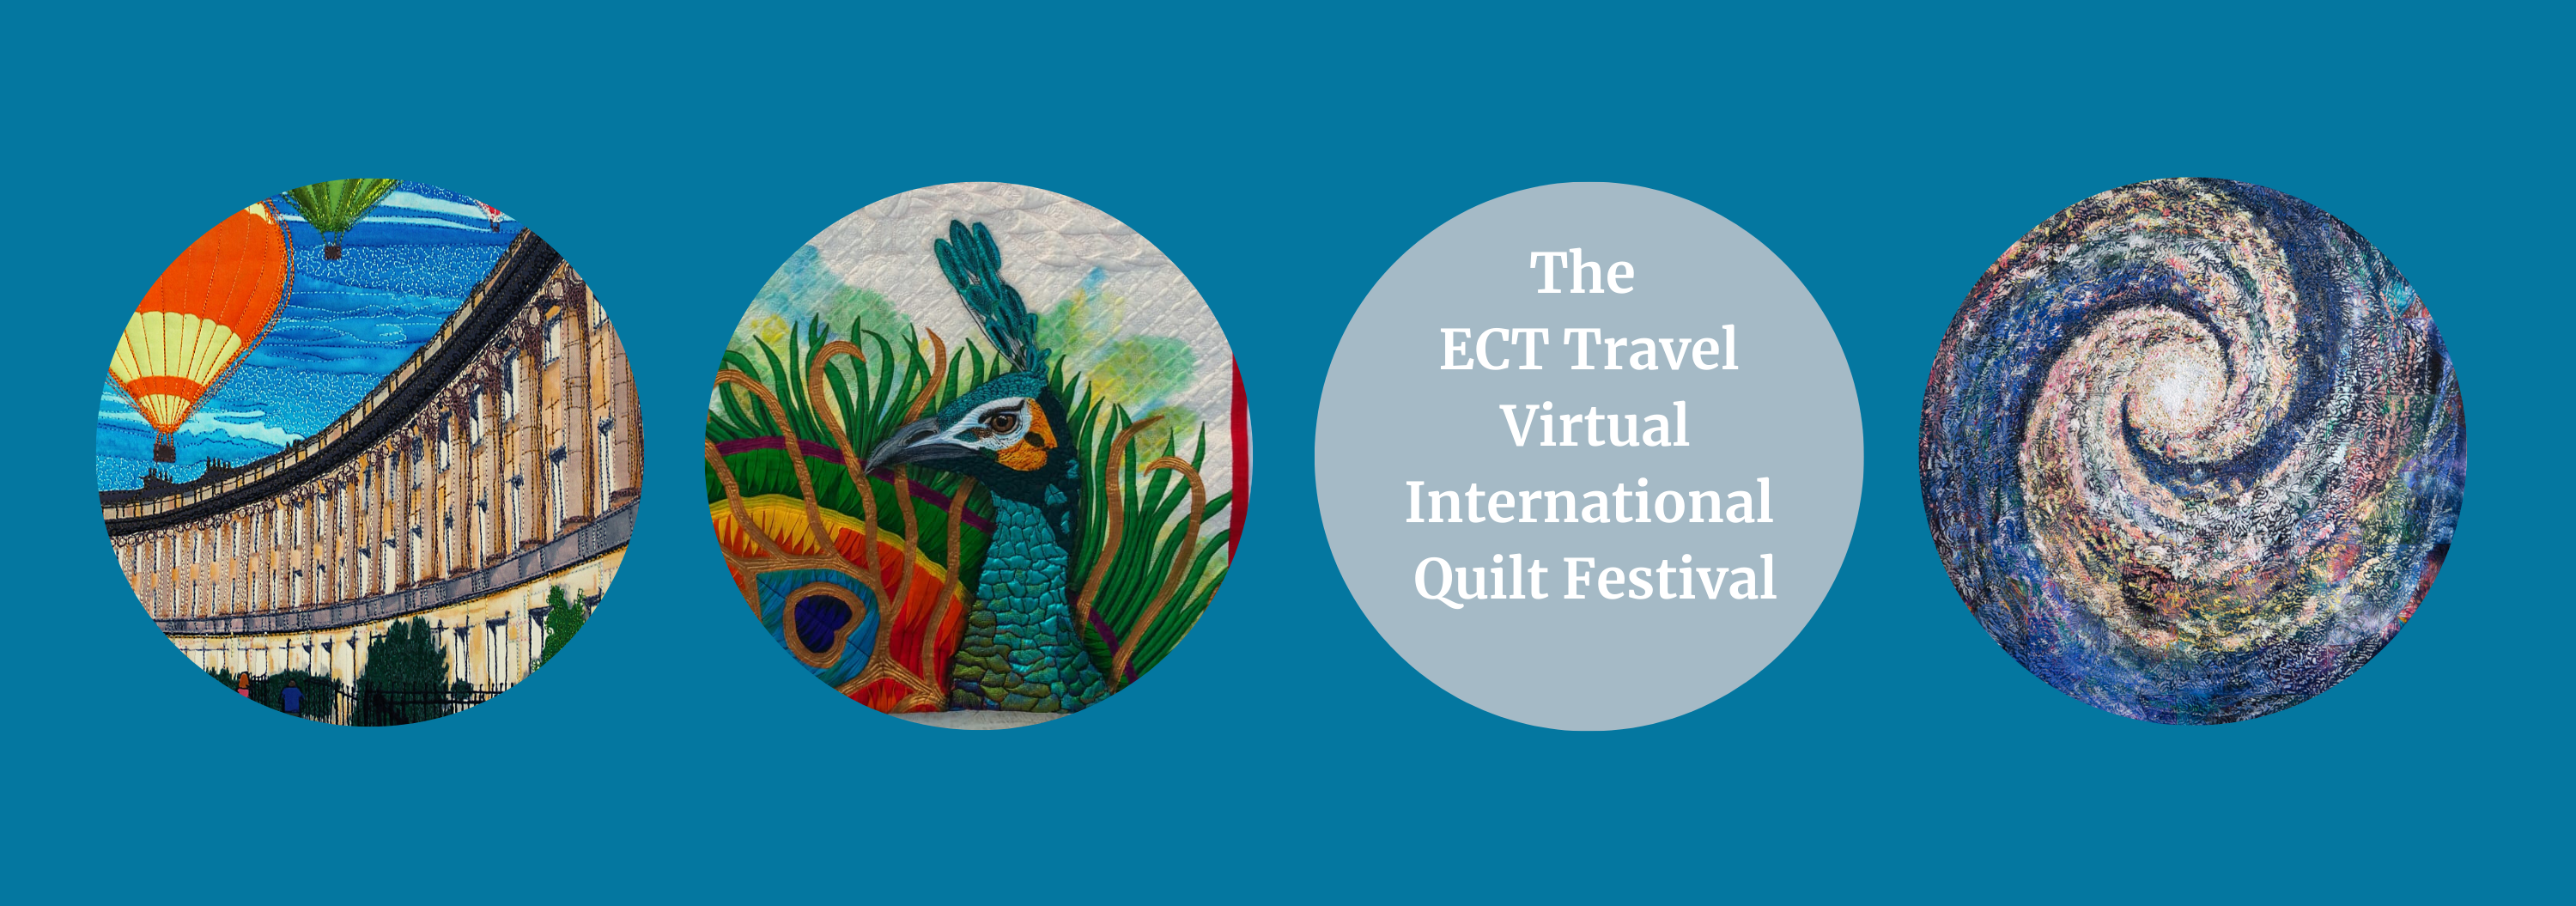 Virtual Quilt Festival with ECT Travel